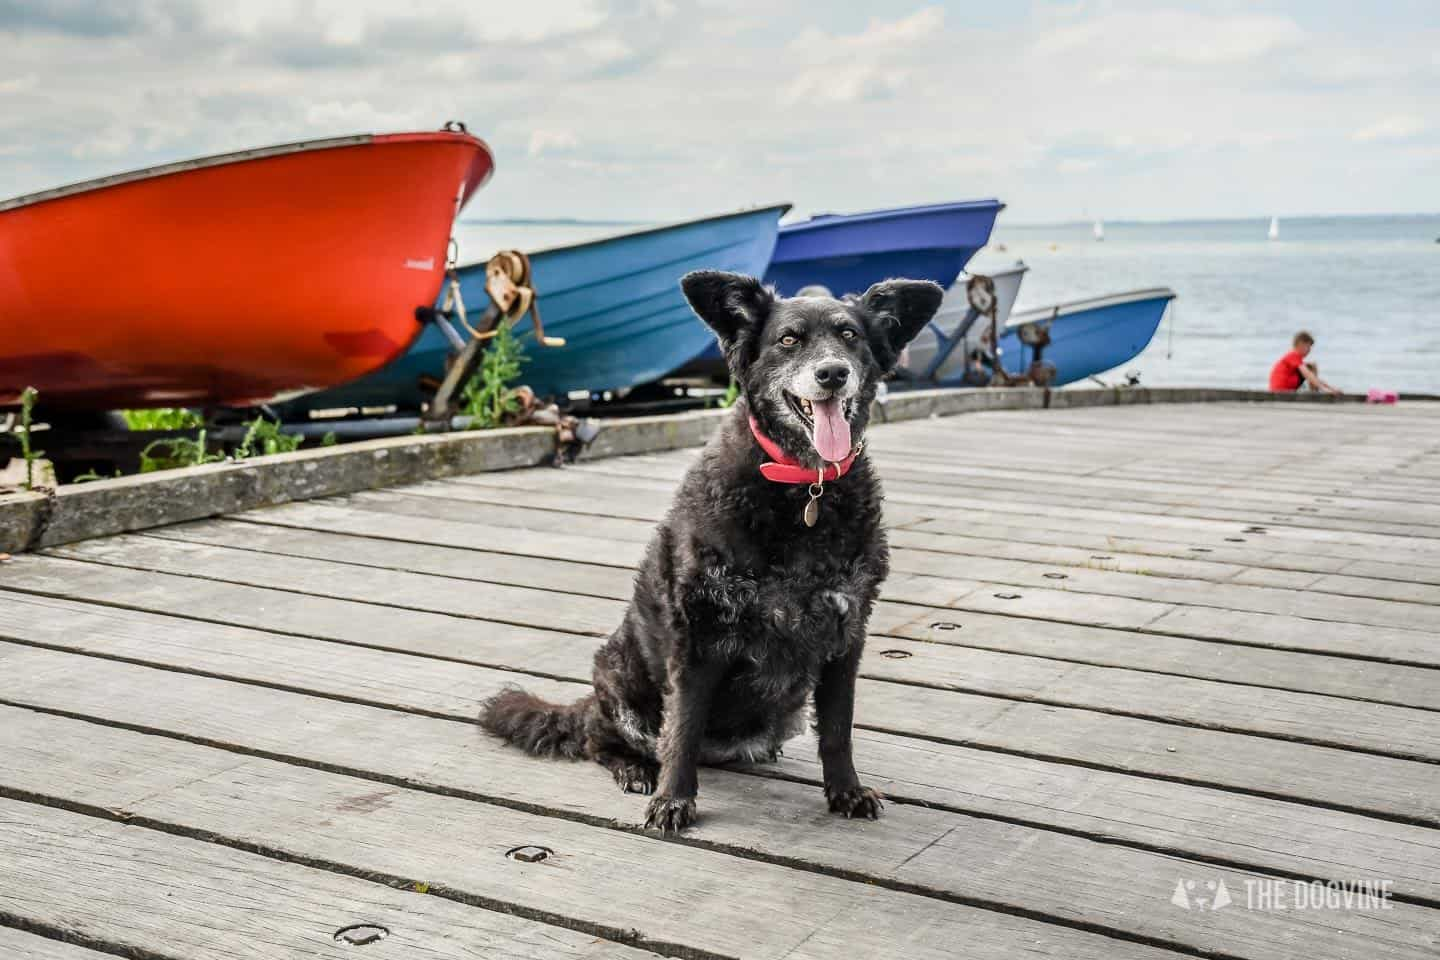 Dogs Day Out With Fetch & Follow On Tour In Dog-Friendly Whitstable 9